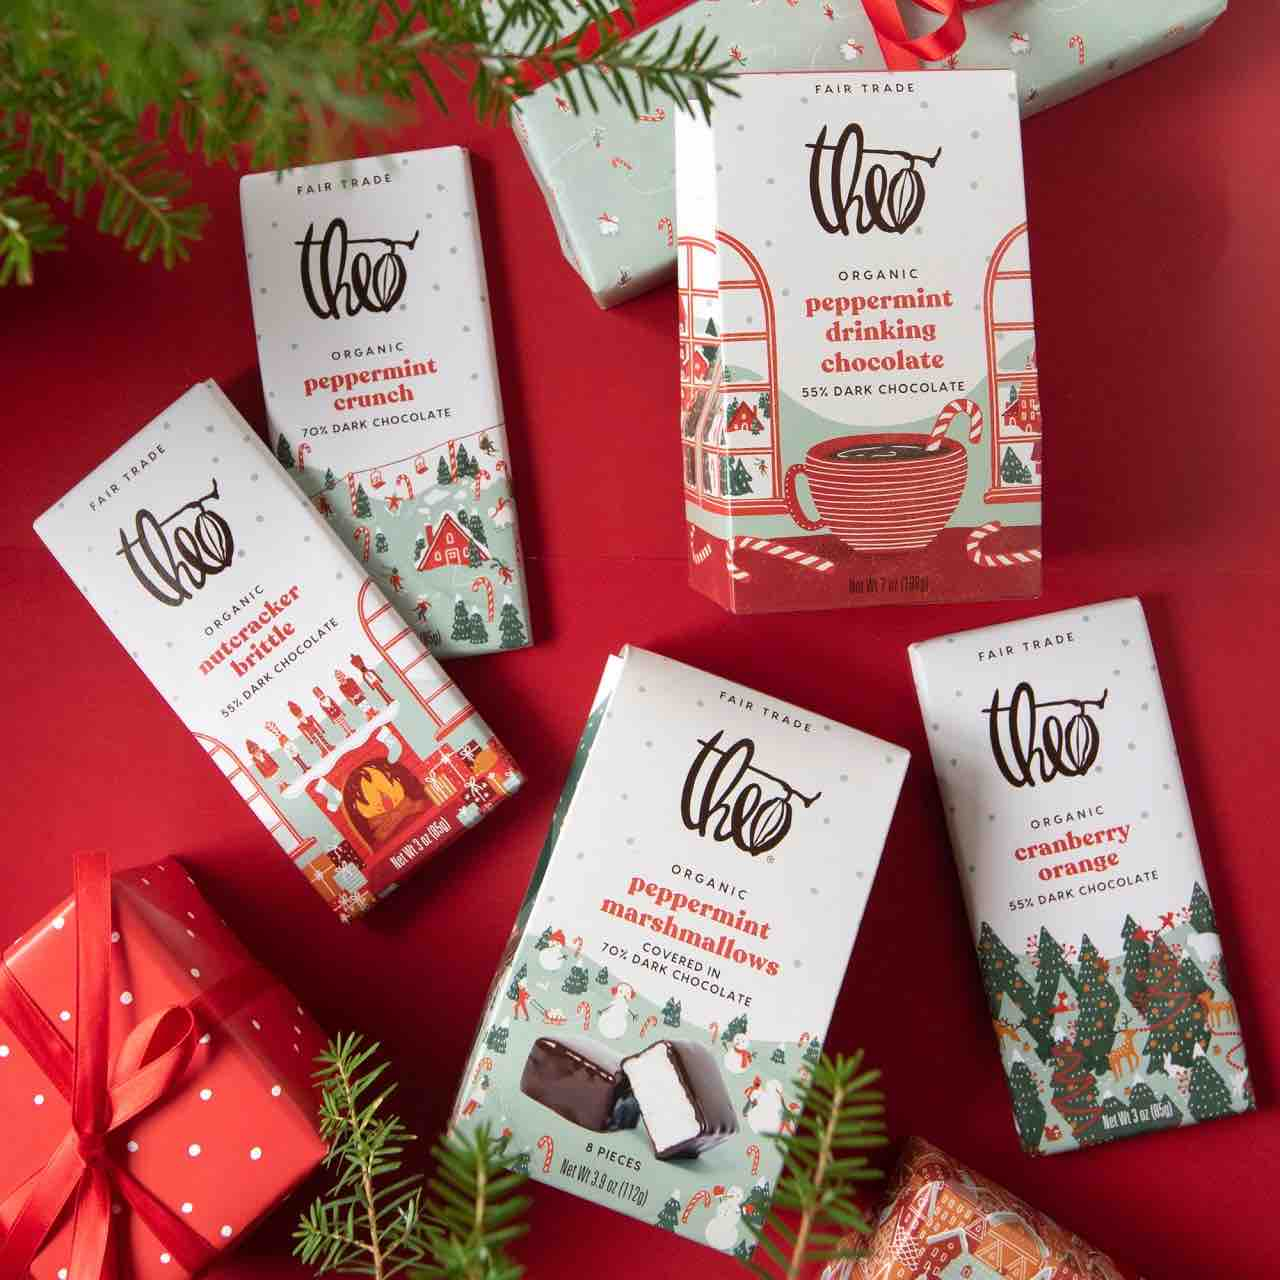 21 Fair-trade chocolate brands to delight & indulge this Christmas